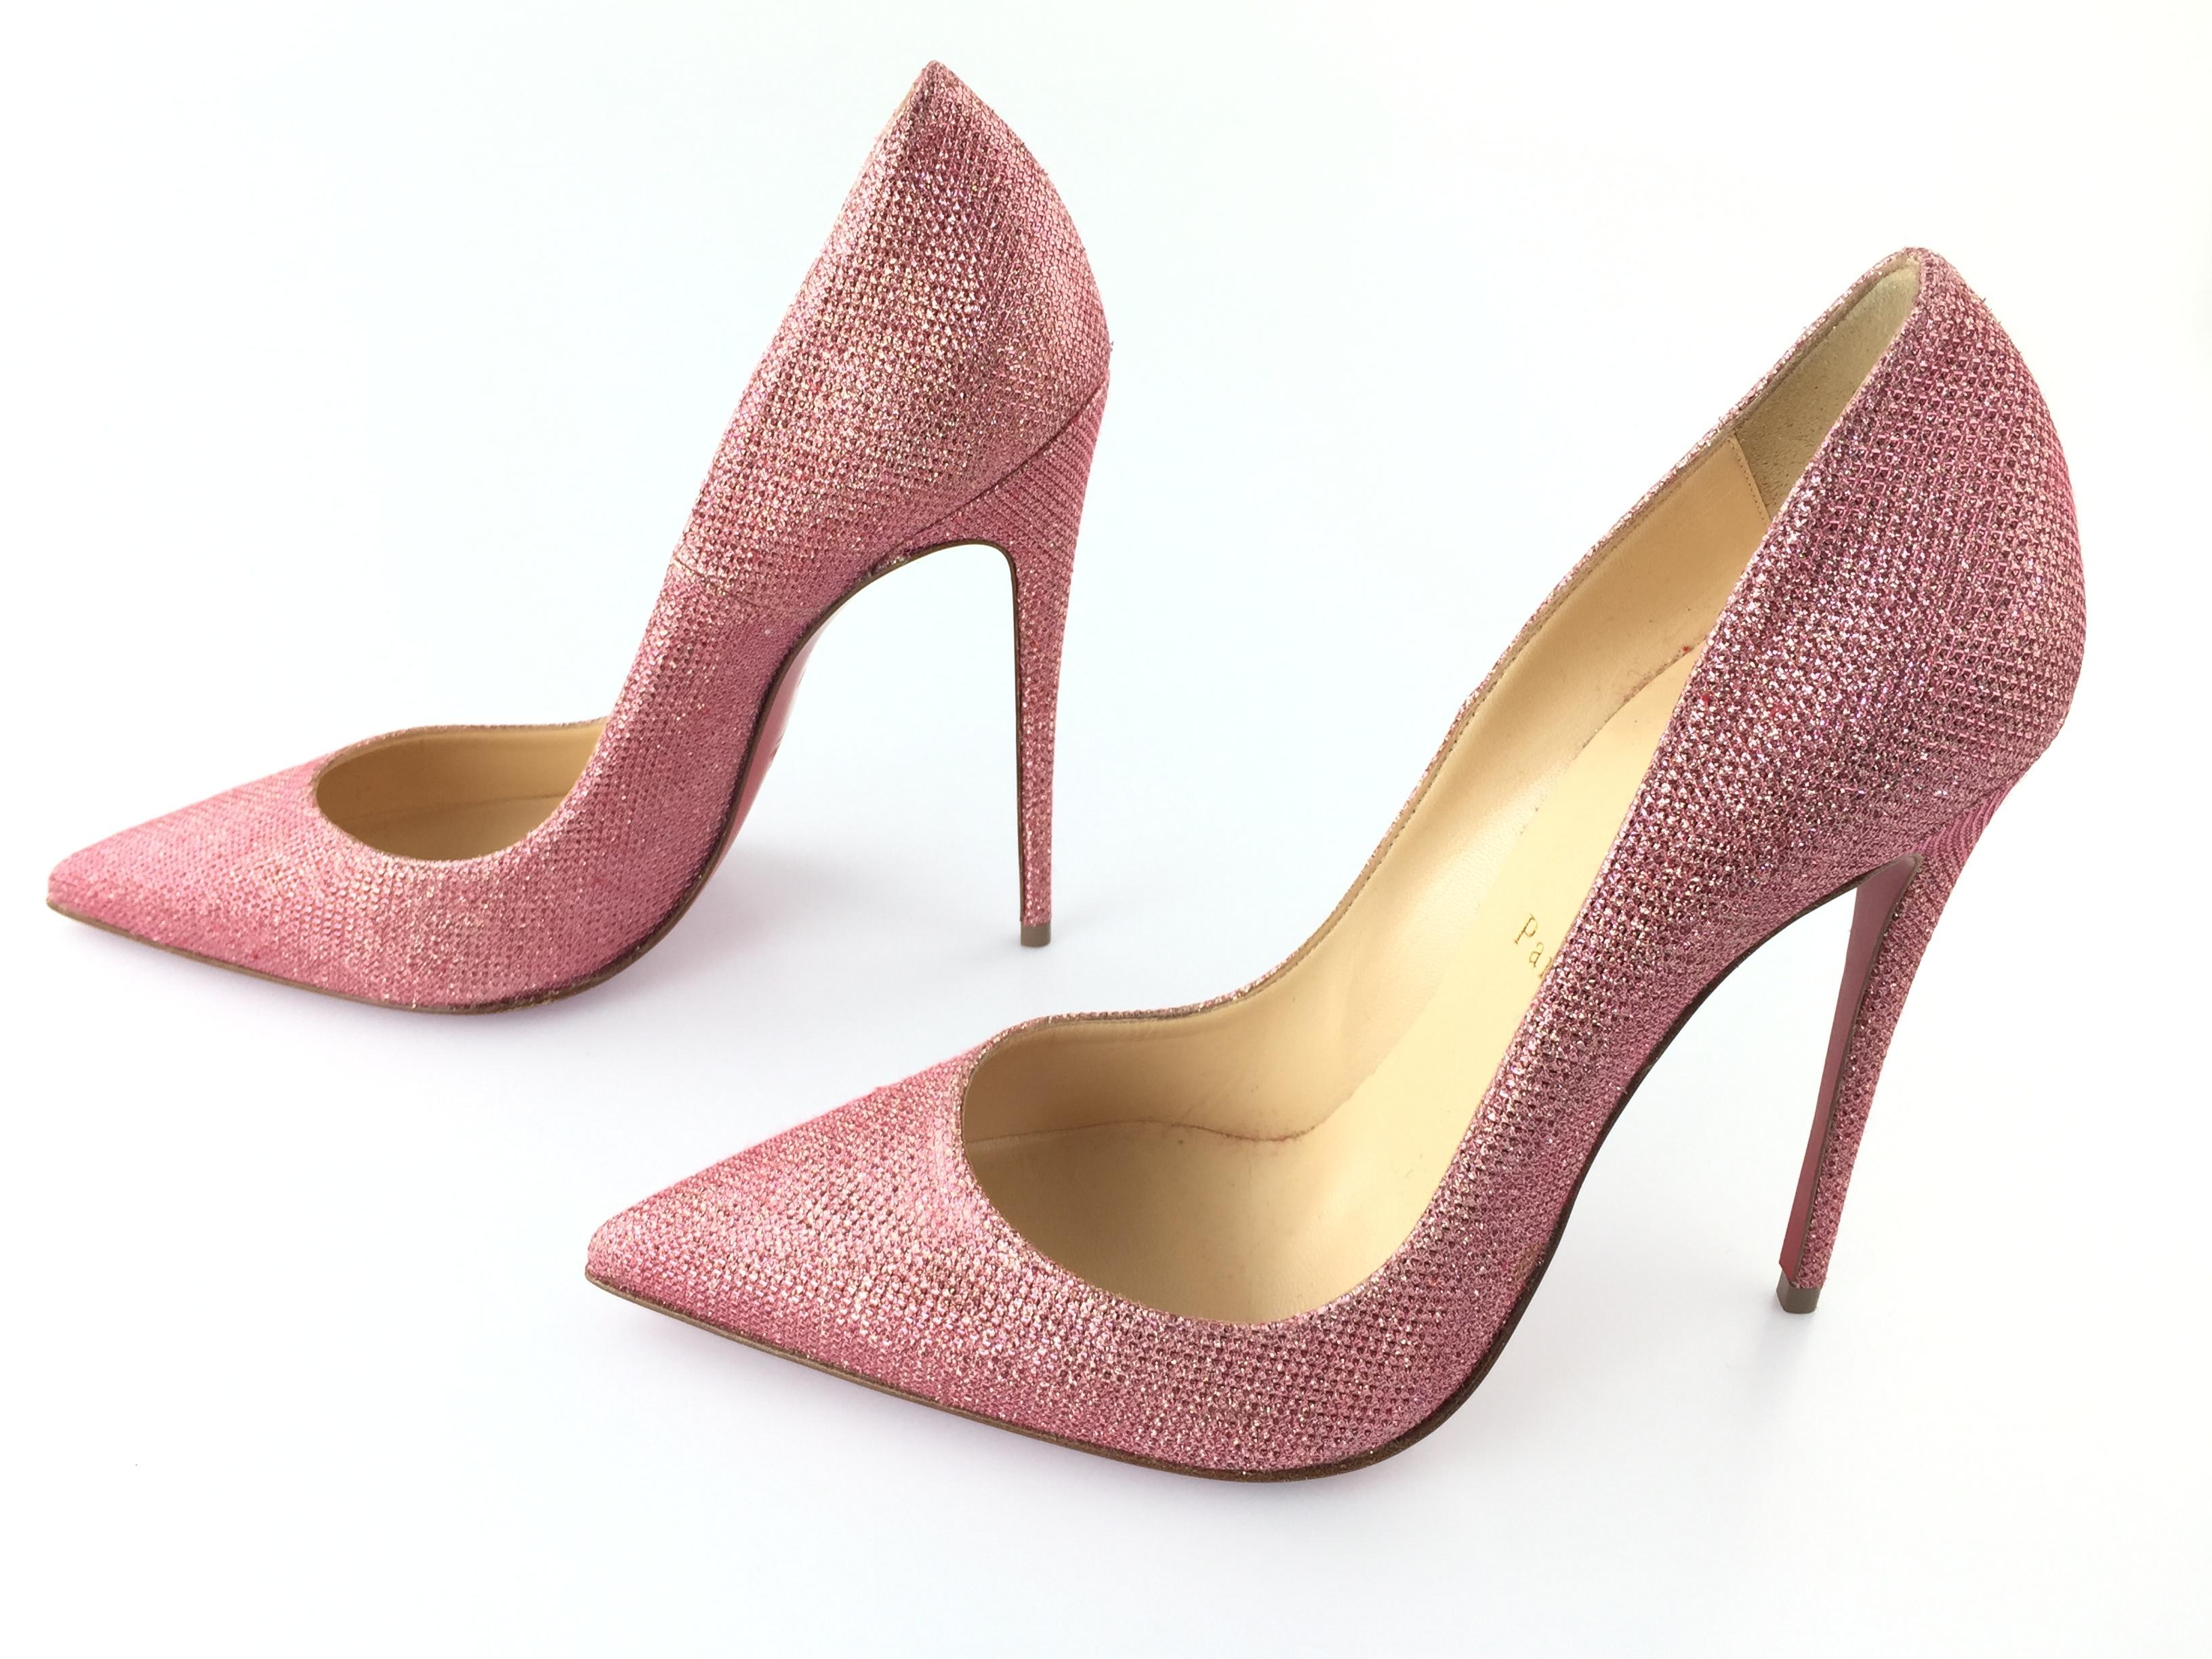 52083a866f2a ... Christian Louboutin Pink Classic So So So Kate 120mm Glitter Tisse  Point-toe Leather Heels ...